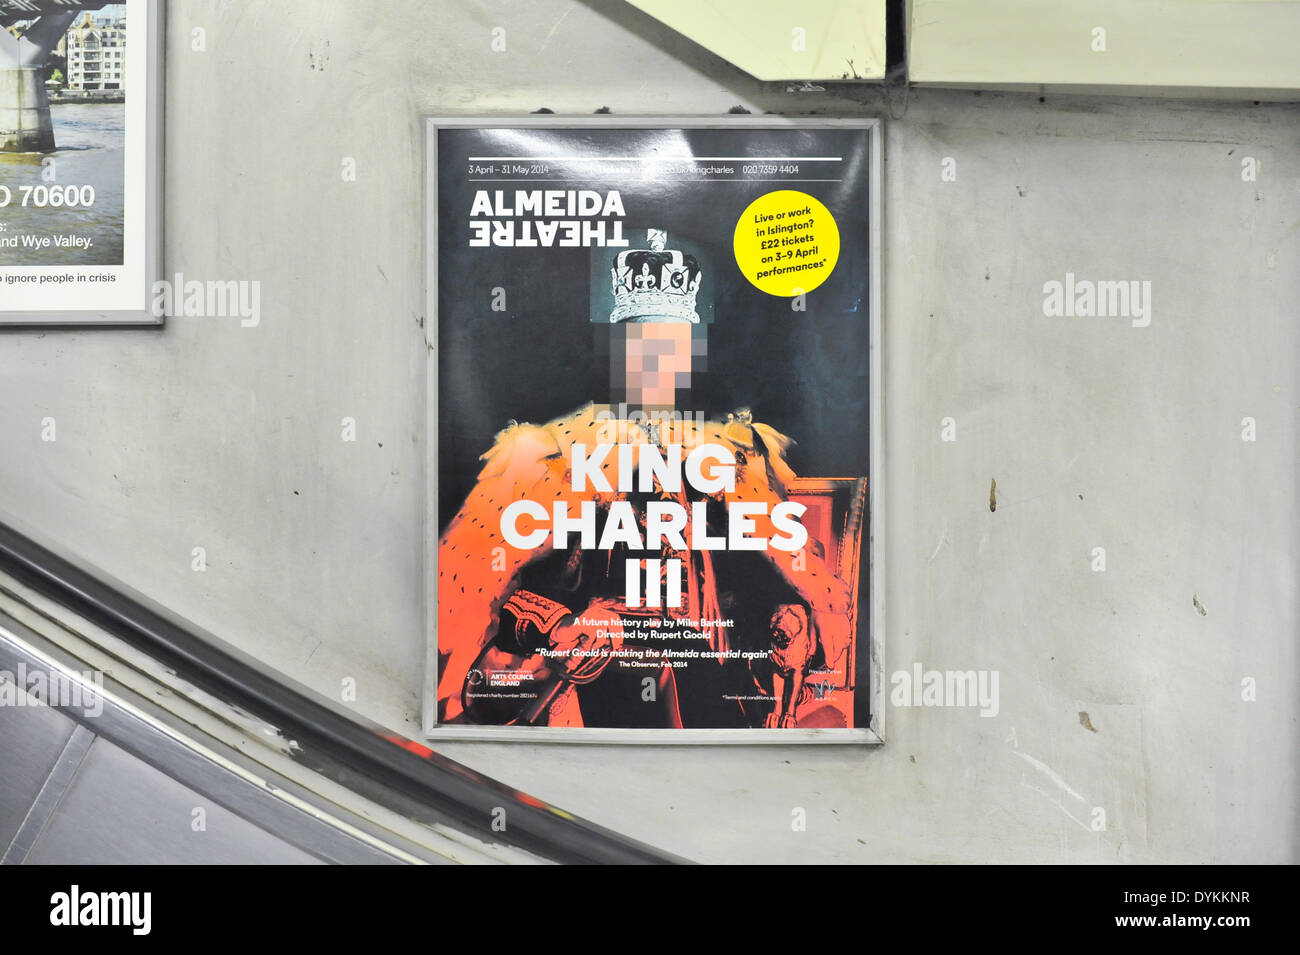 Angel Tube station, London, UK. 21st April 2014. Posters displayed on the underground showing play have his face pixelated, while the poster outside the theatre does not. Credit:  Matthew Chattle/Alamy Live News - Stock Image